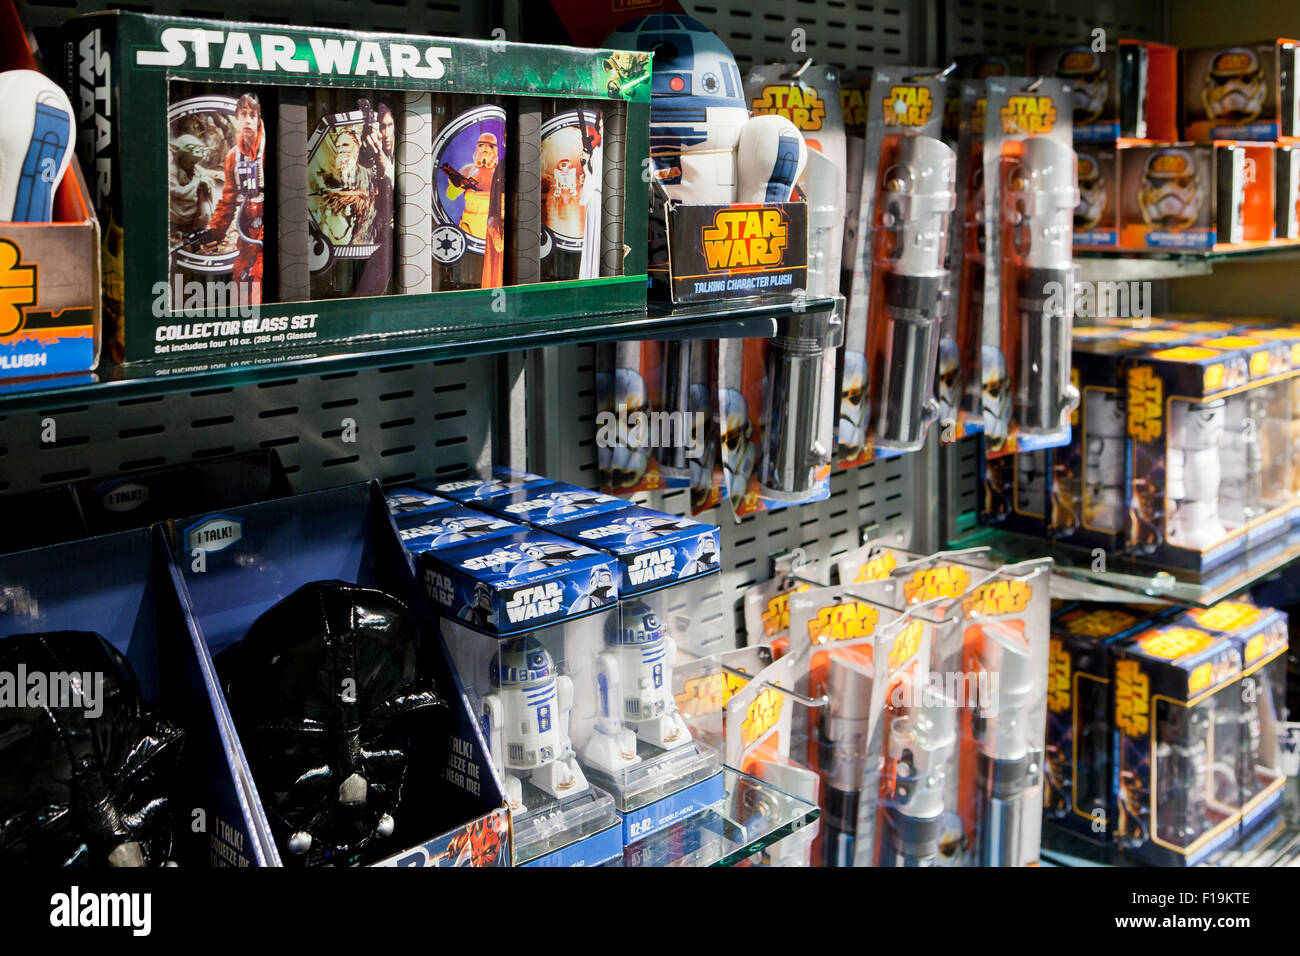 Star Wars Theme Toys At Toy Store Usa Stock Photo 86879646 Alamy